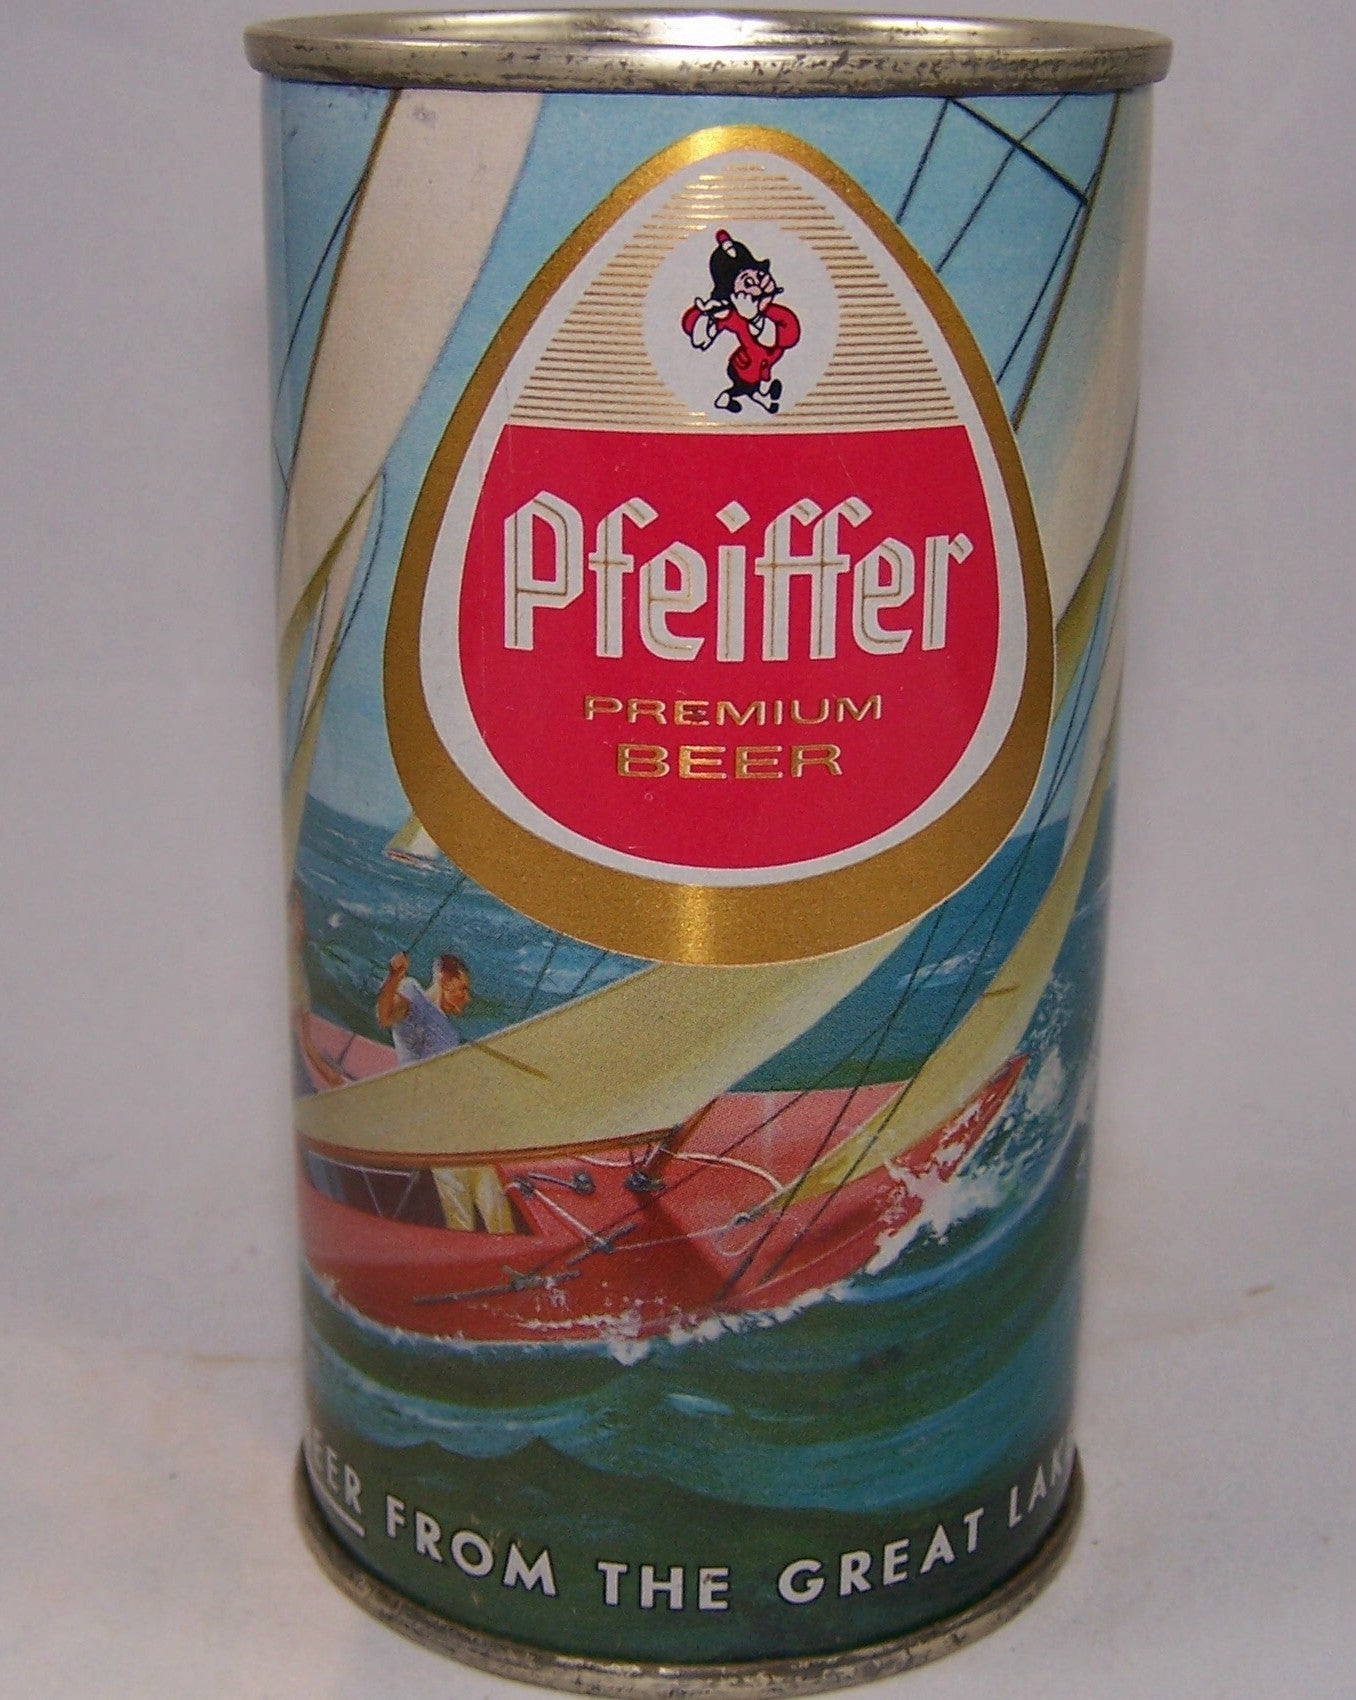 Pfeiffer (Dull) Premium Beer, USBC 114-17, Grade 1/1+ Sold in 2017